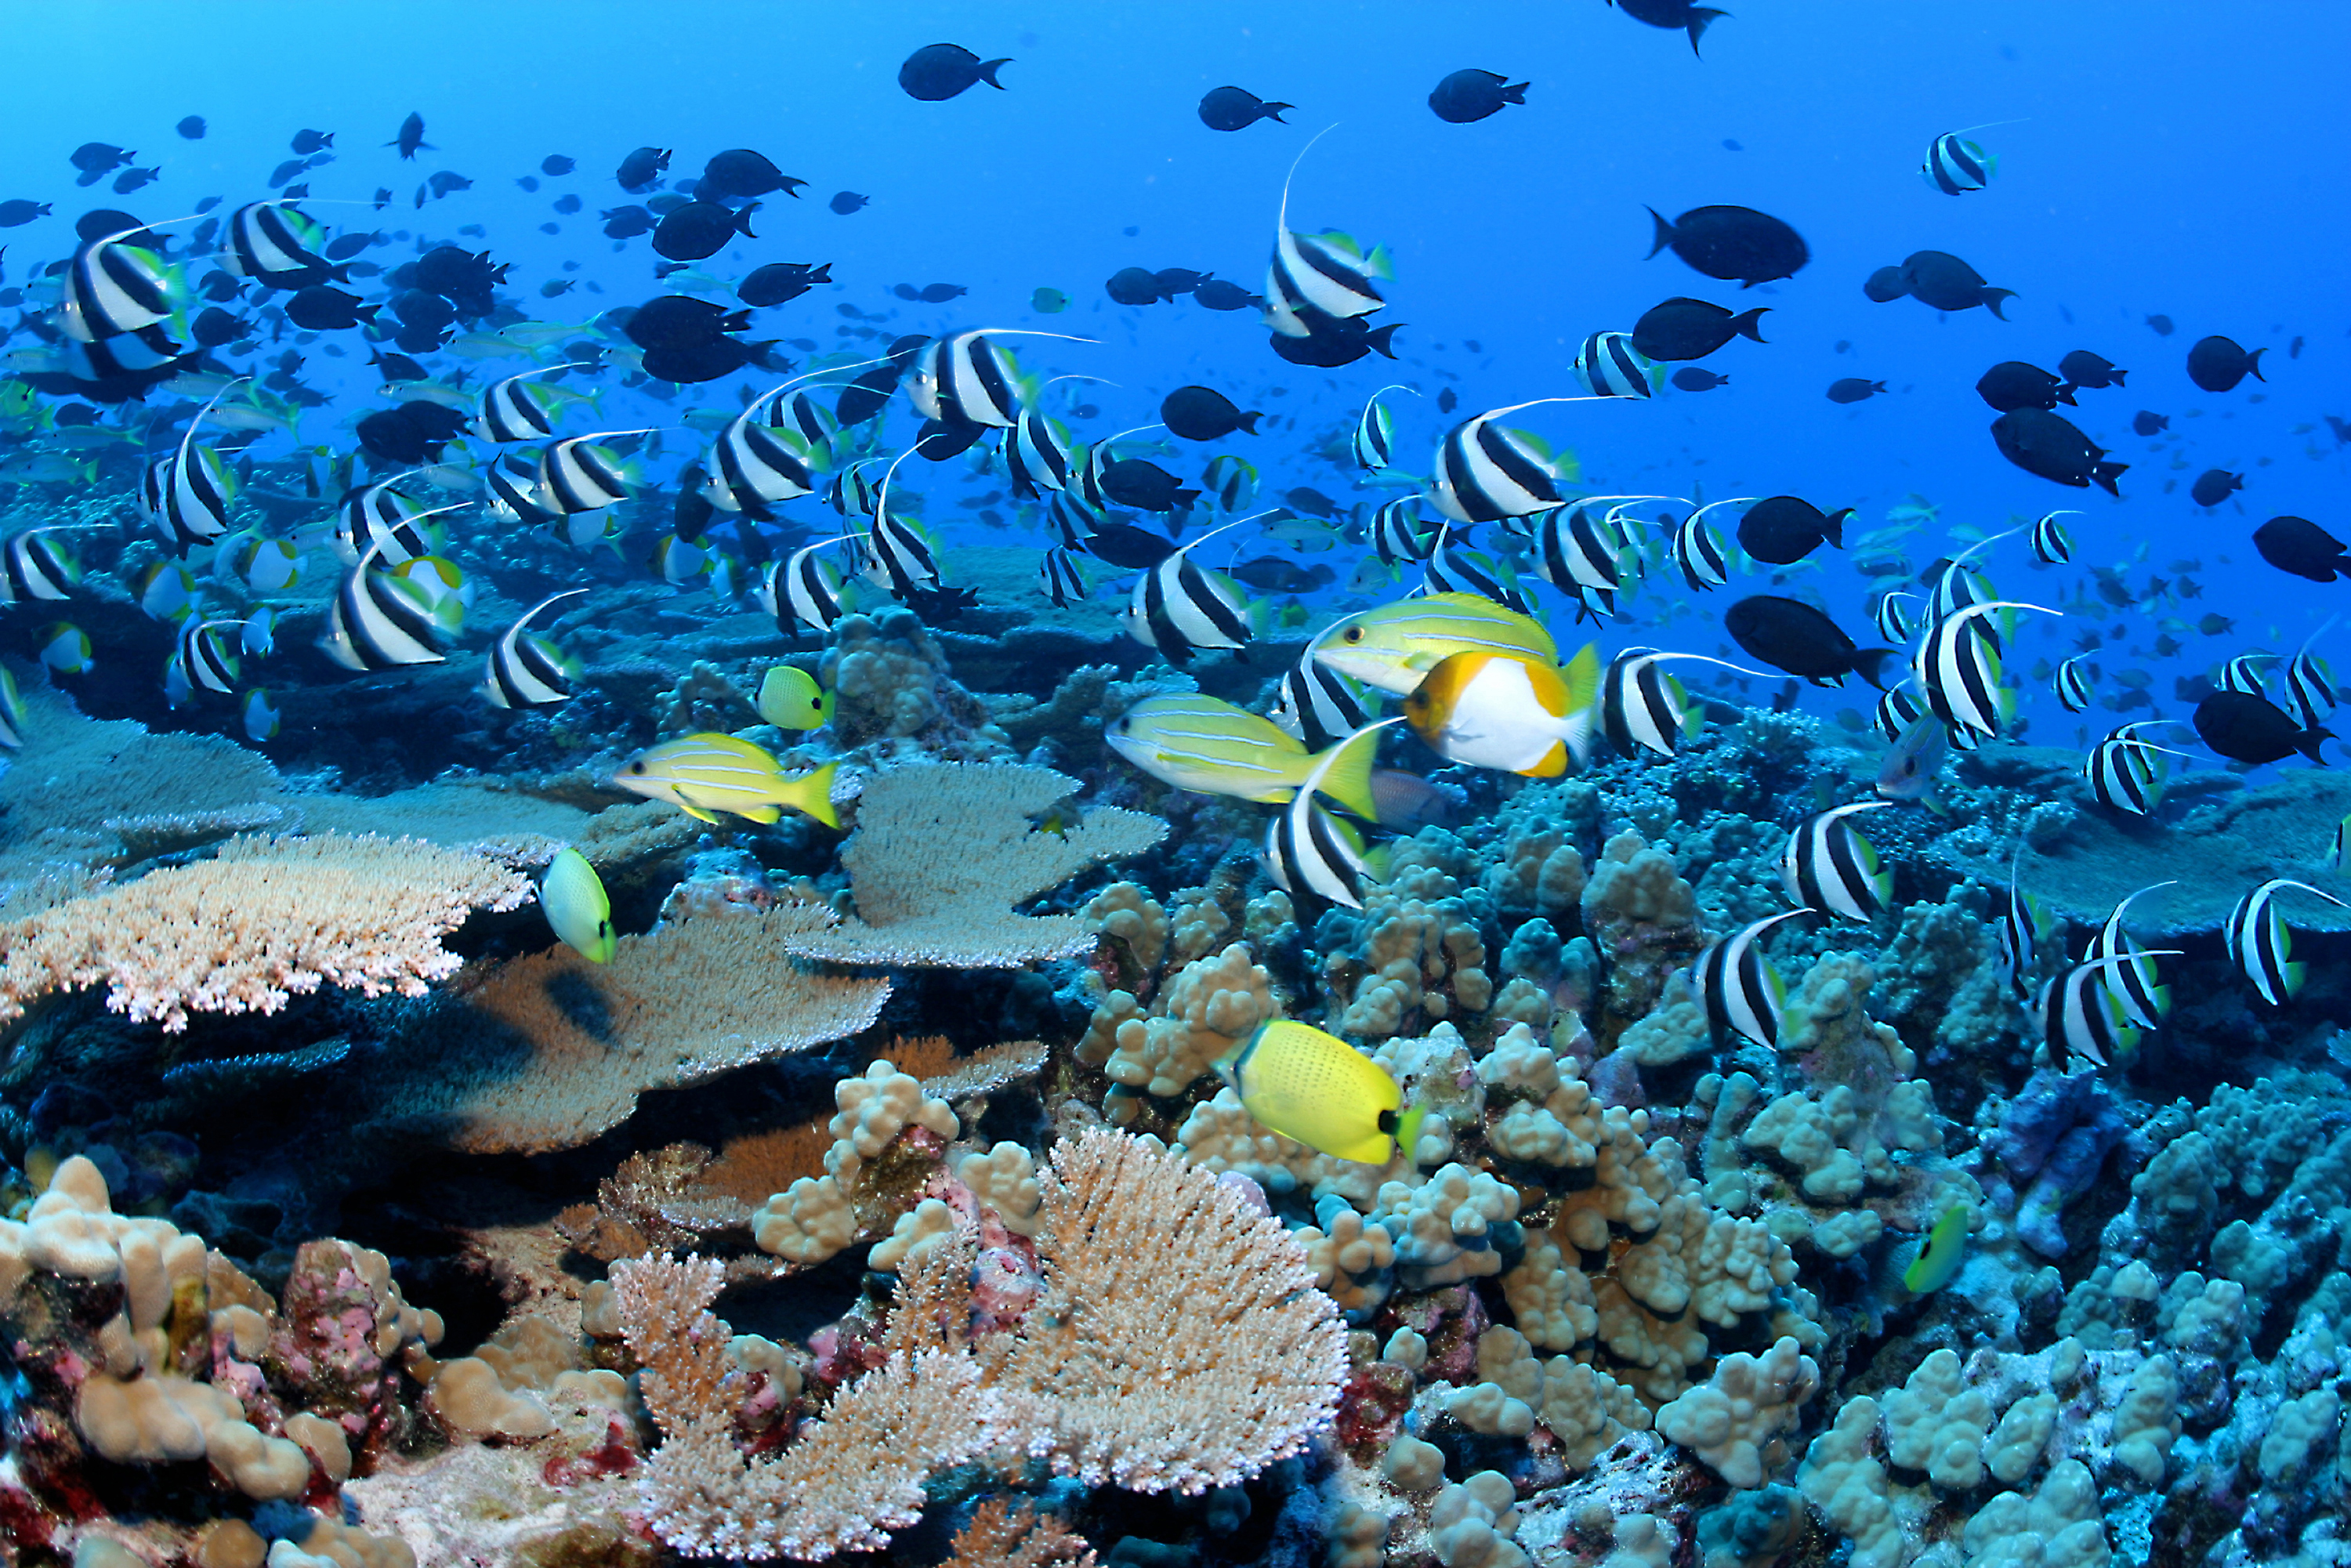 Clouds of reef fish and corals at Papahānaumokuākea Marine National Monument.